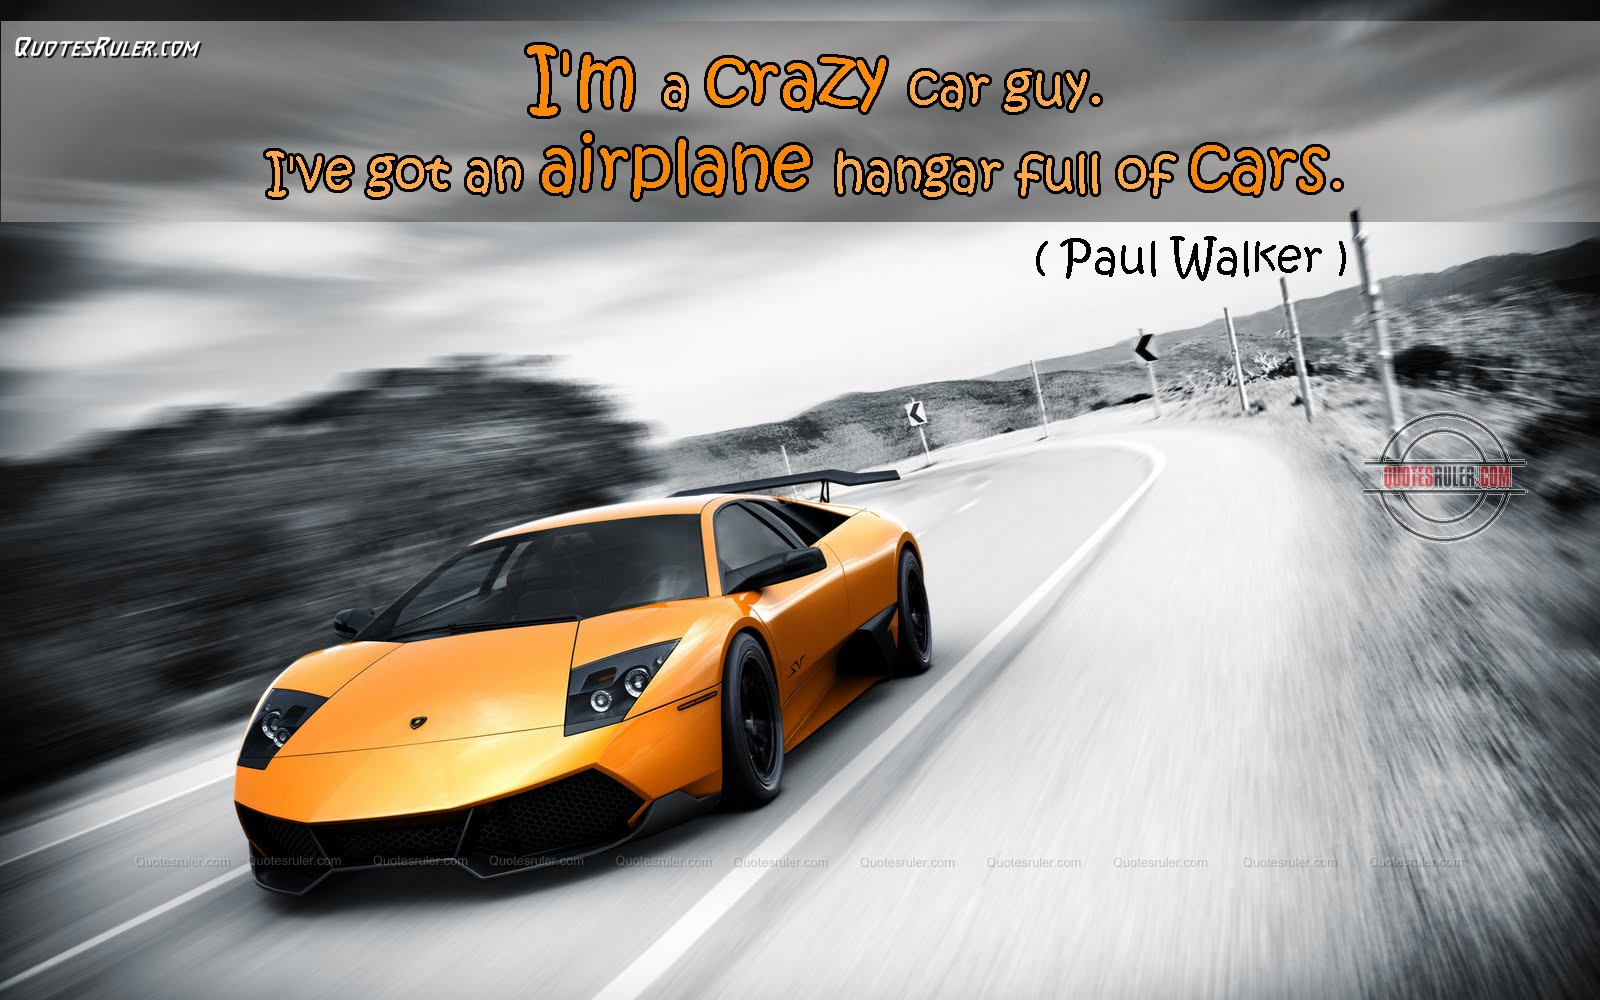 Im-a-crazy-car-guy.-Ive-got-an-airplane-